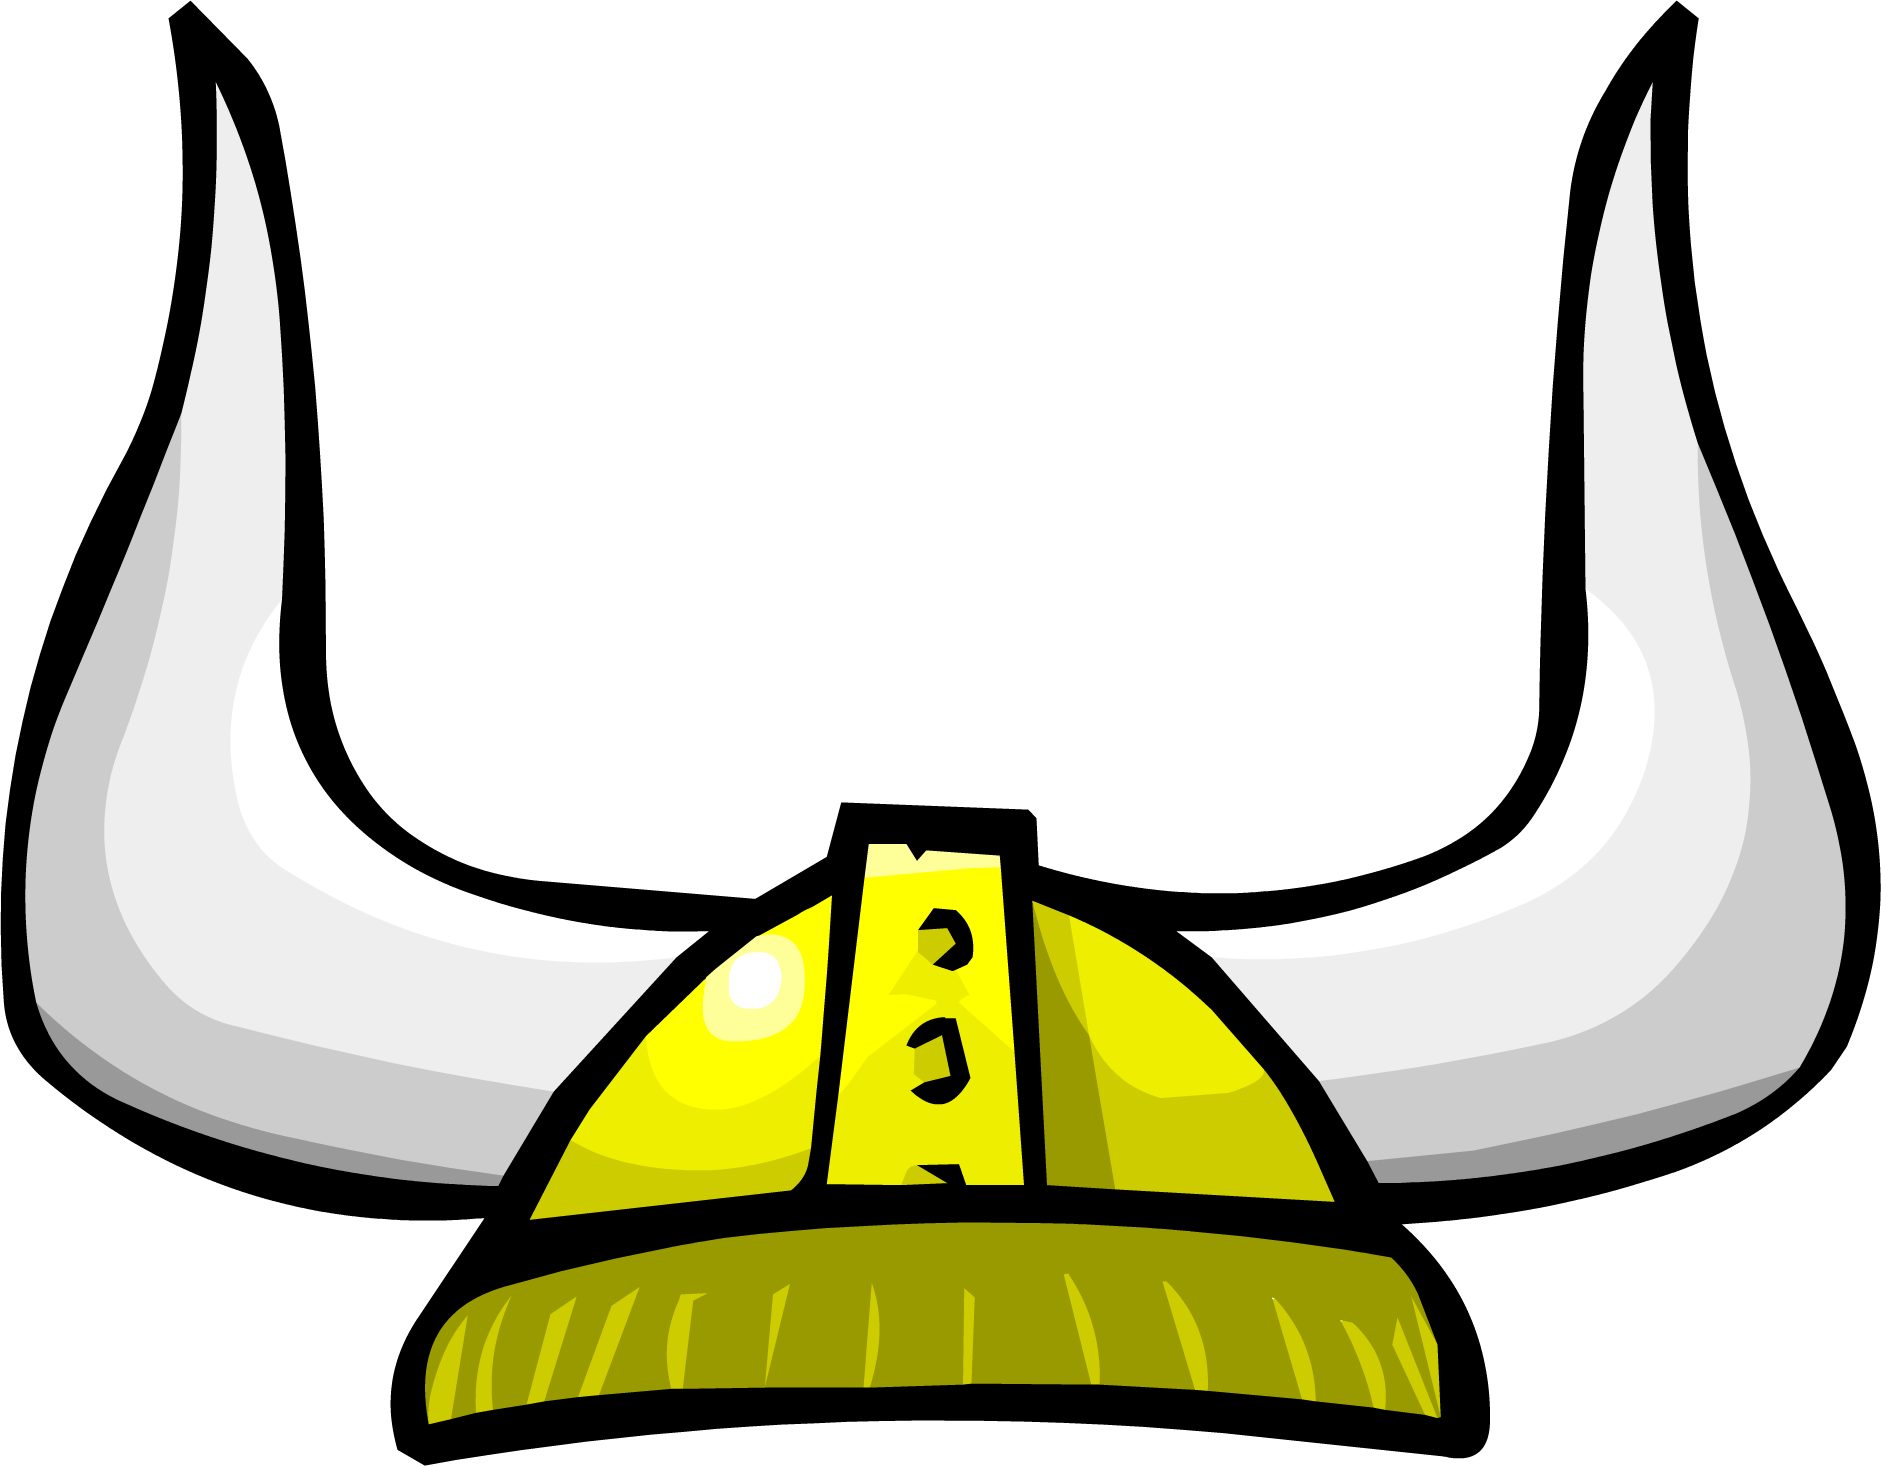 Vikings helmet png. Image gold viking clothing